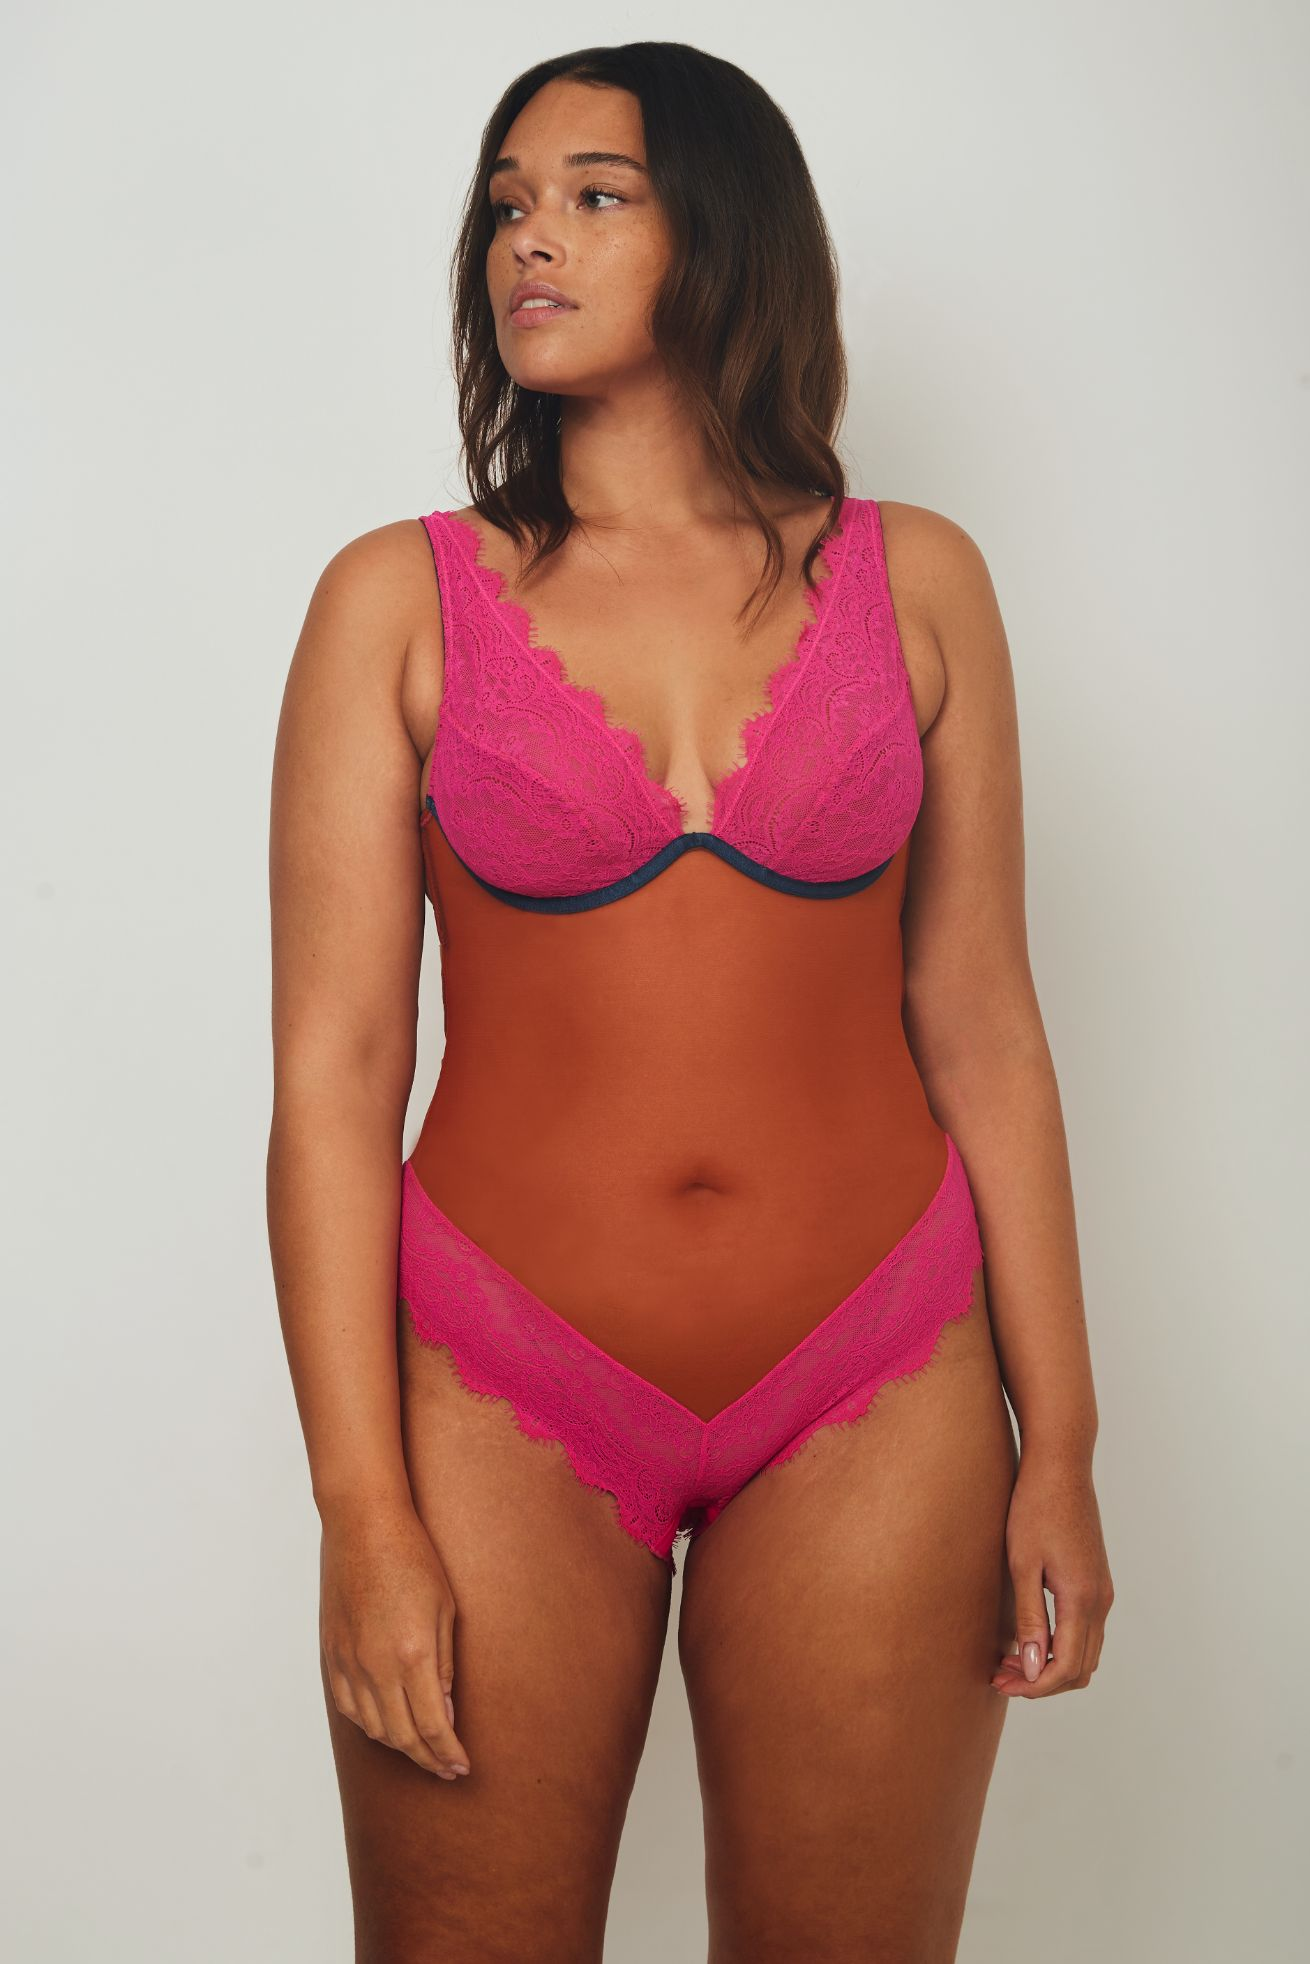 Natalie High Apex Body - Dora Larsen | Colourful Lingerie